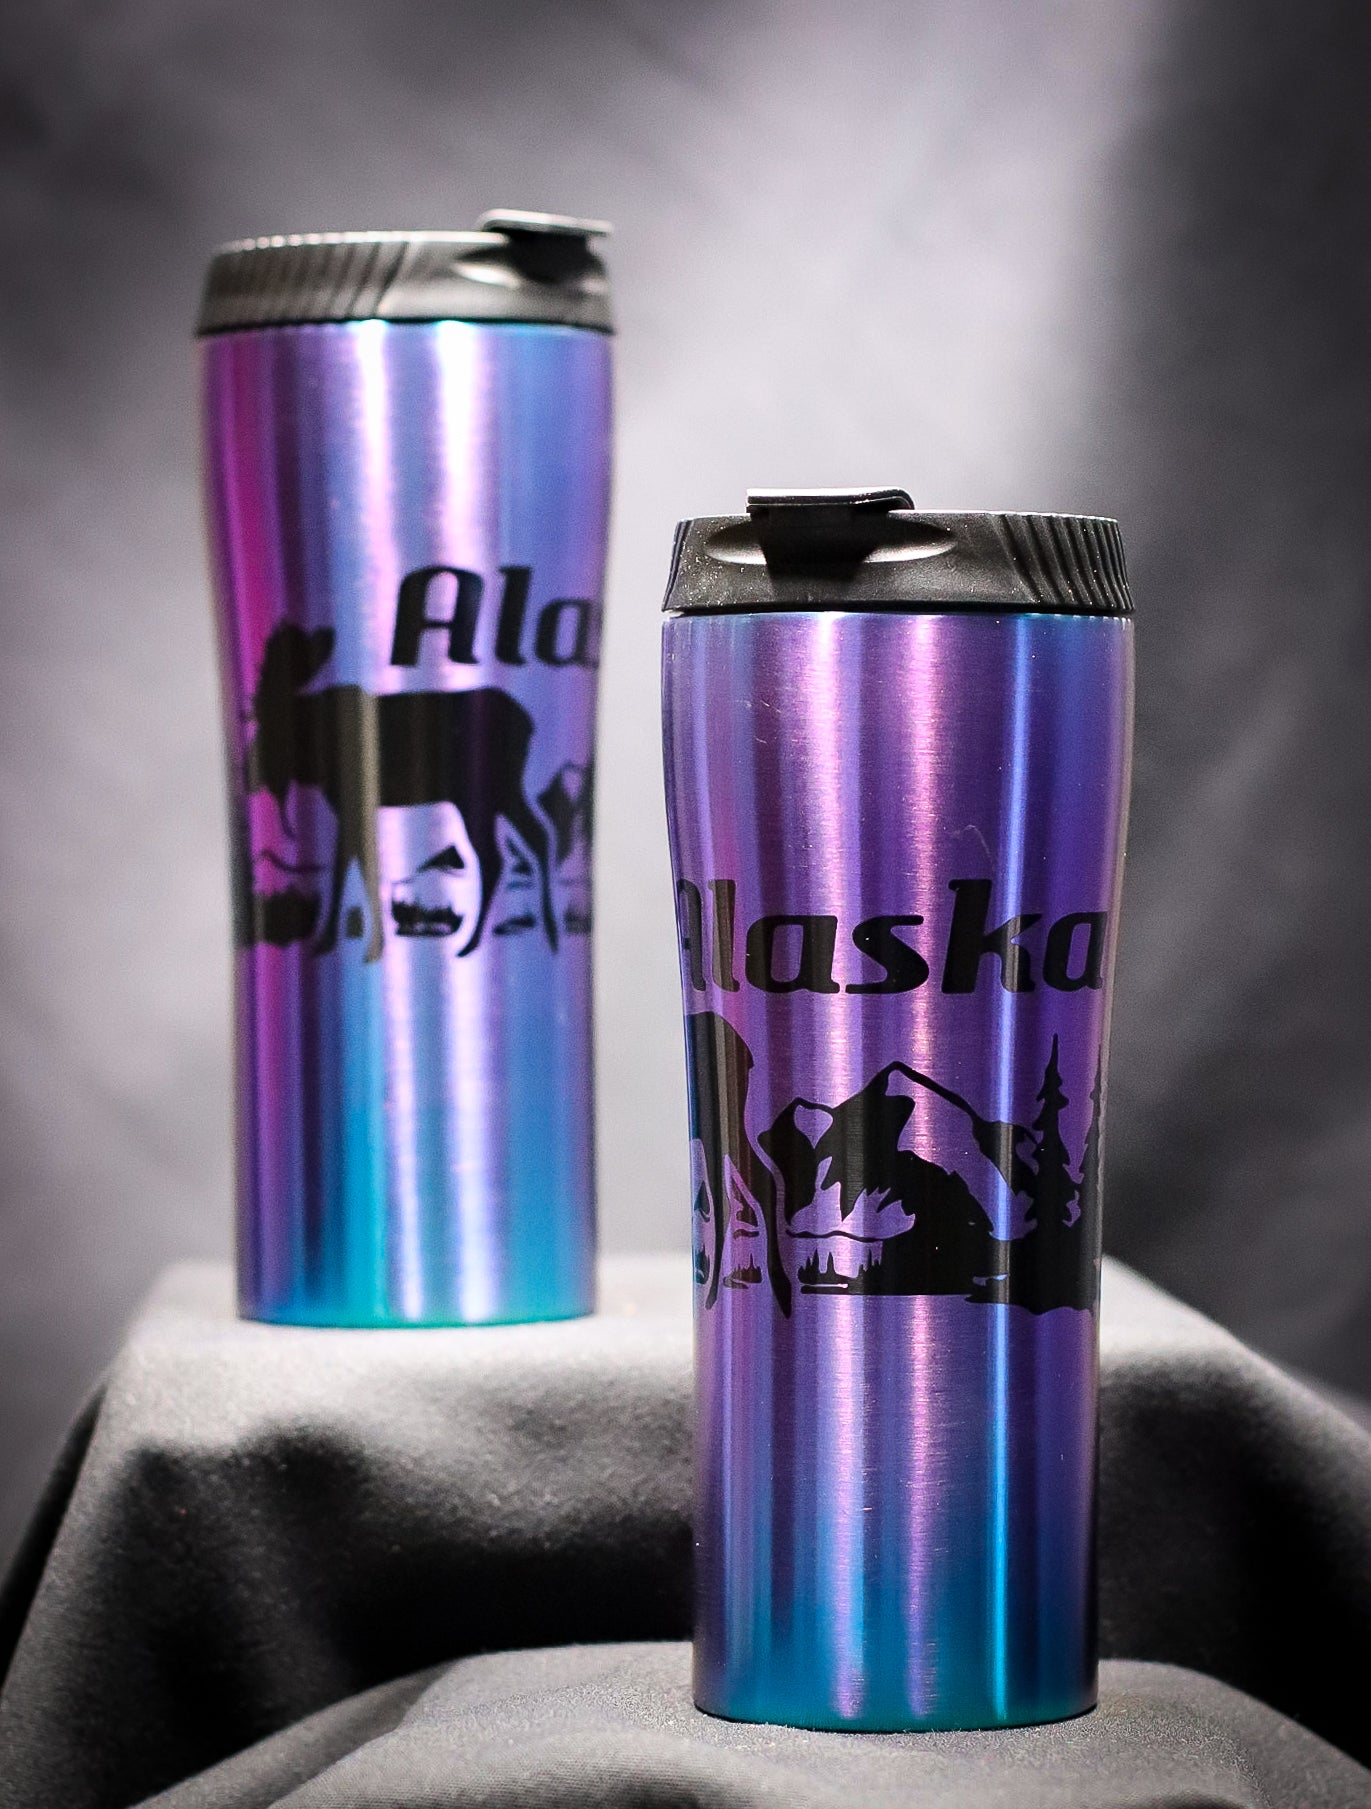 ELECTROPLATED MOOSE IRIDESCENT STAINLESS STEEL 16 OZ THERMAL MUG